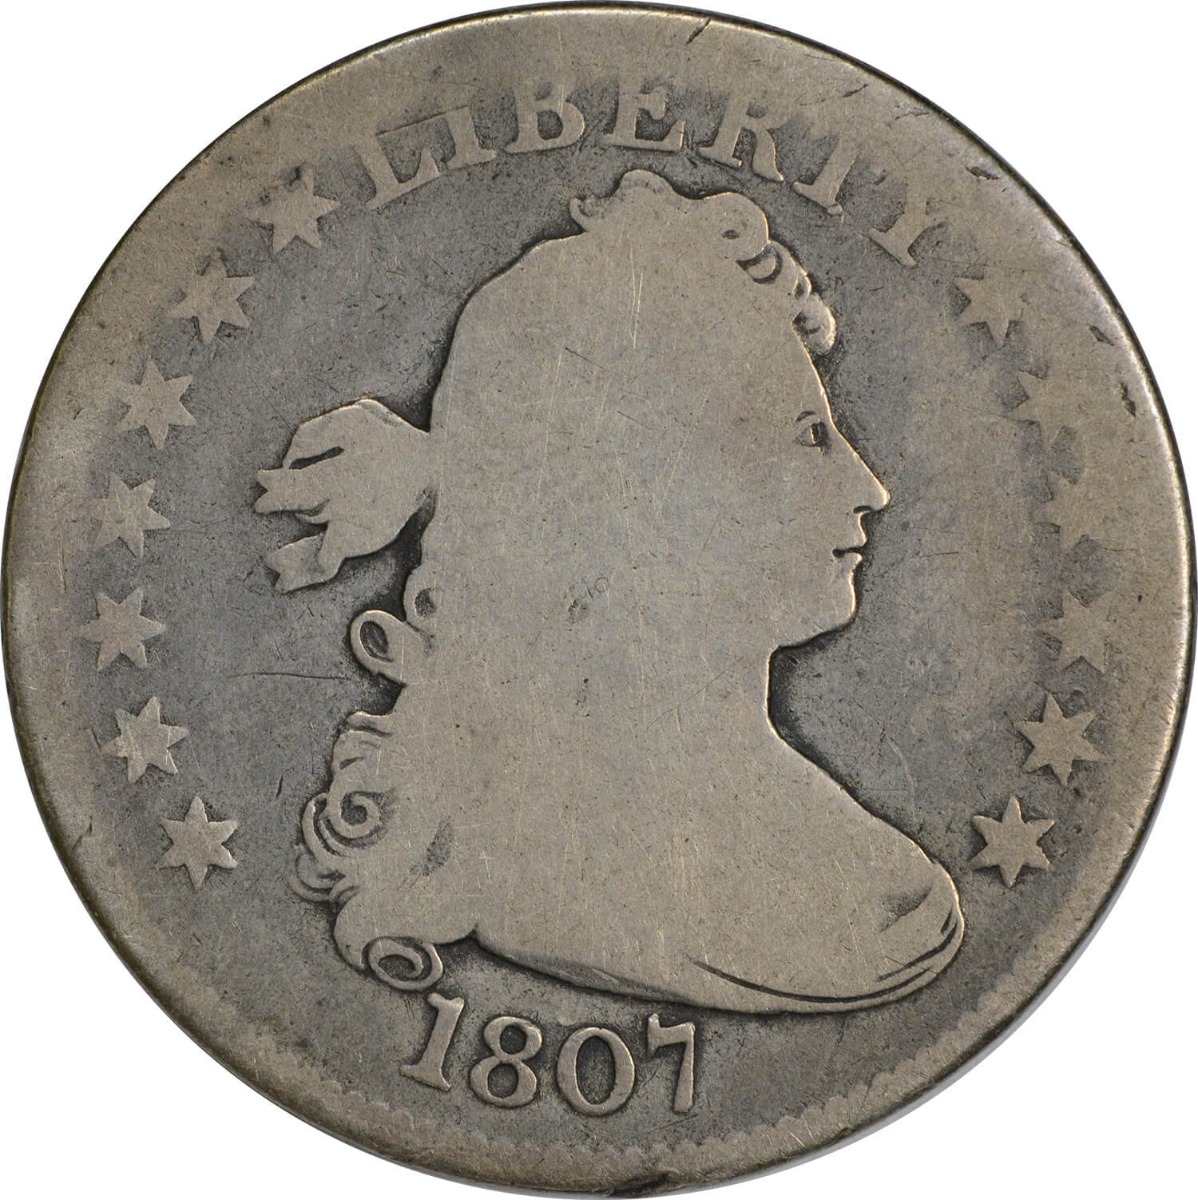 1807 Bust Quarter, G (Graffiti Reverse), Uncertified